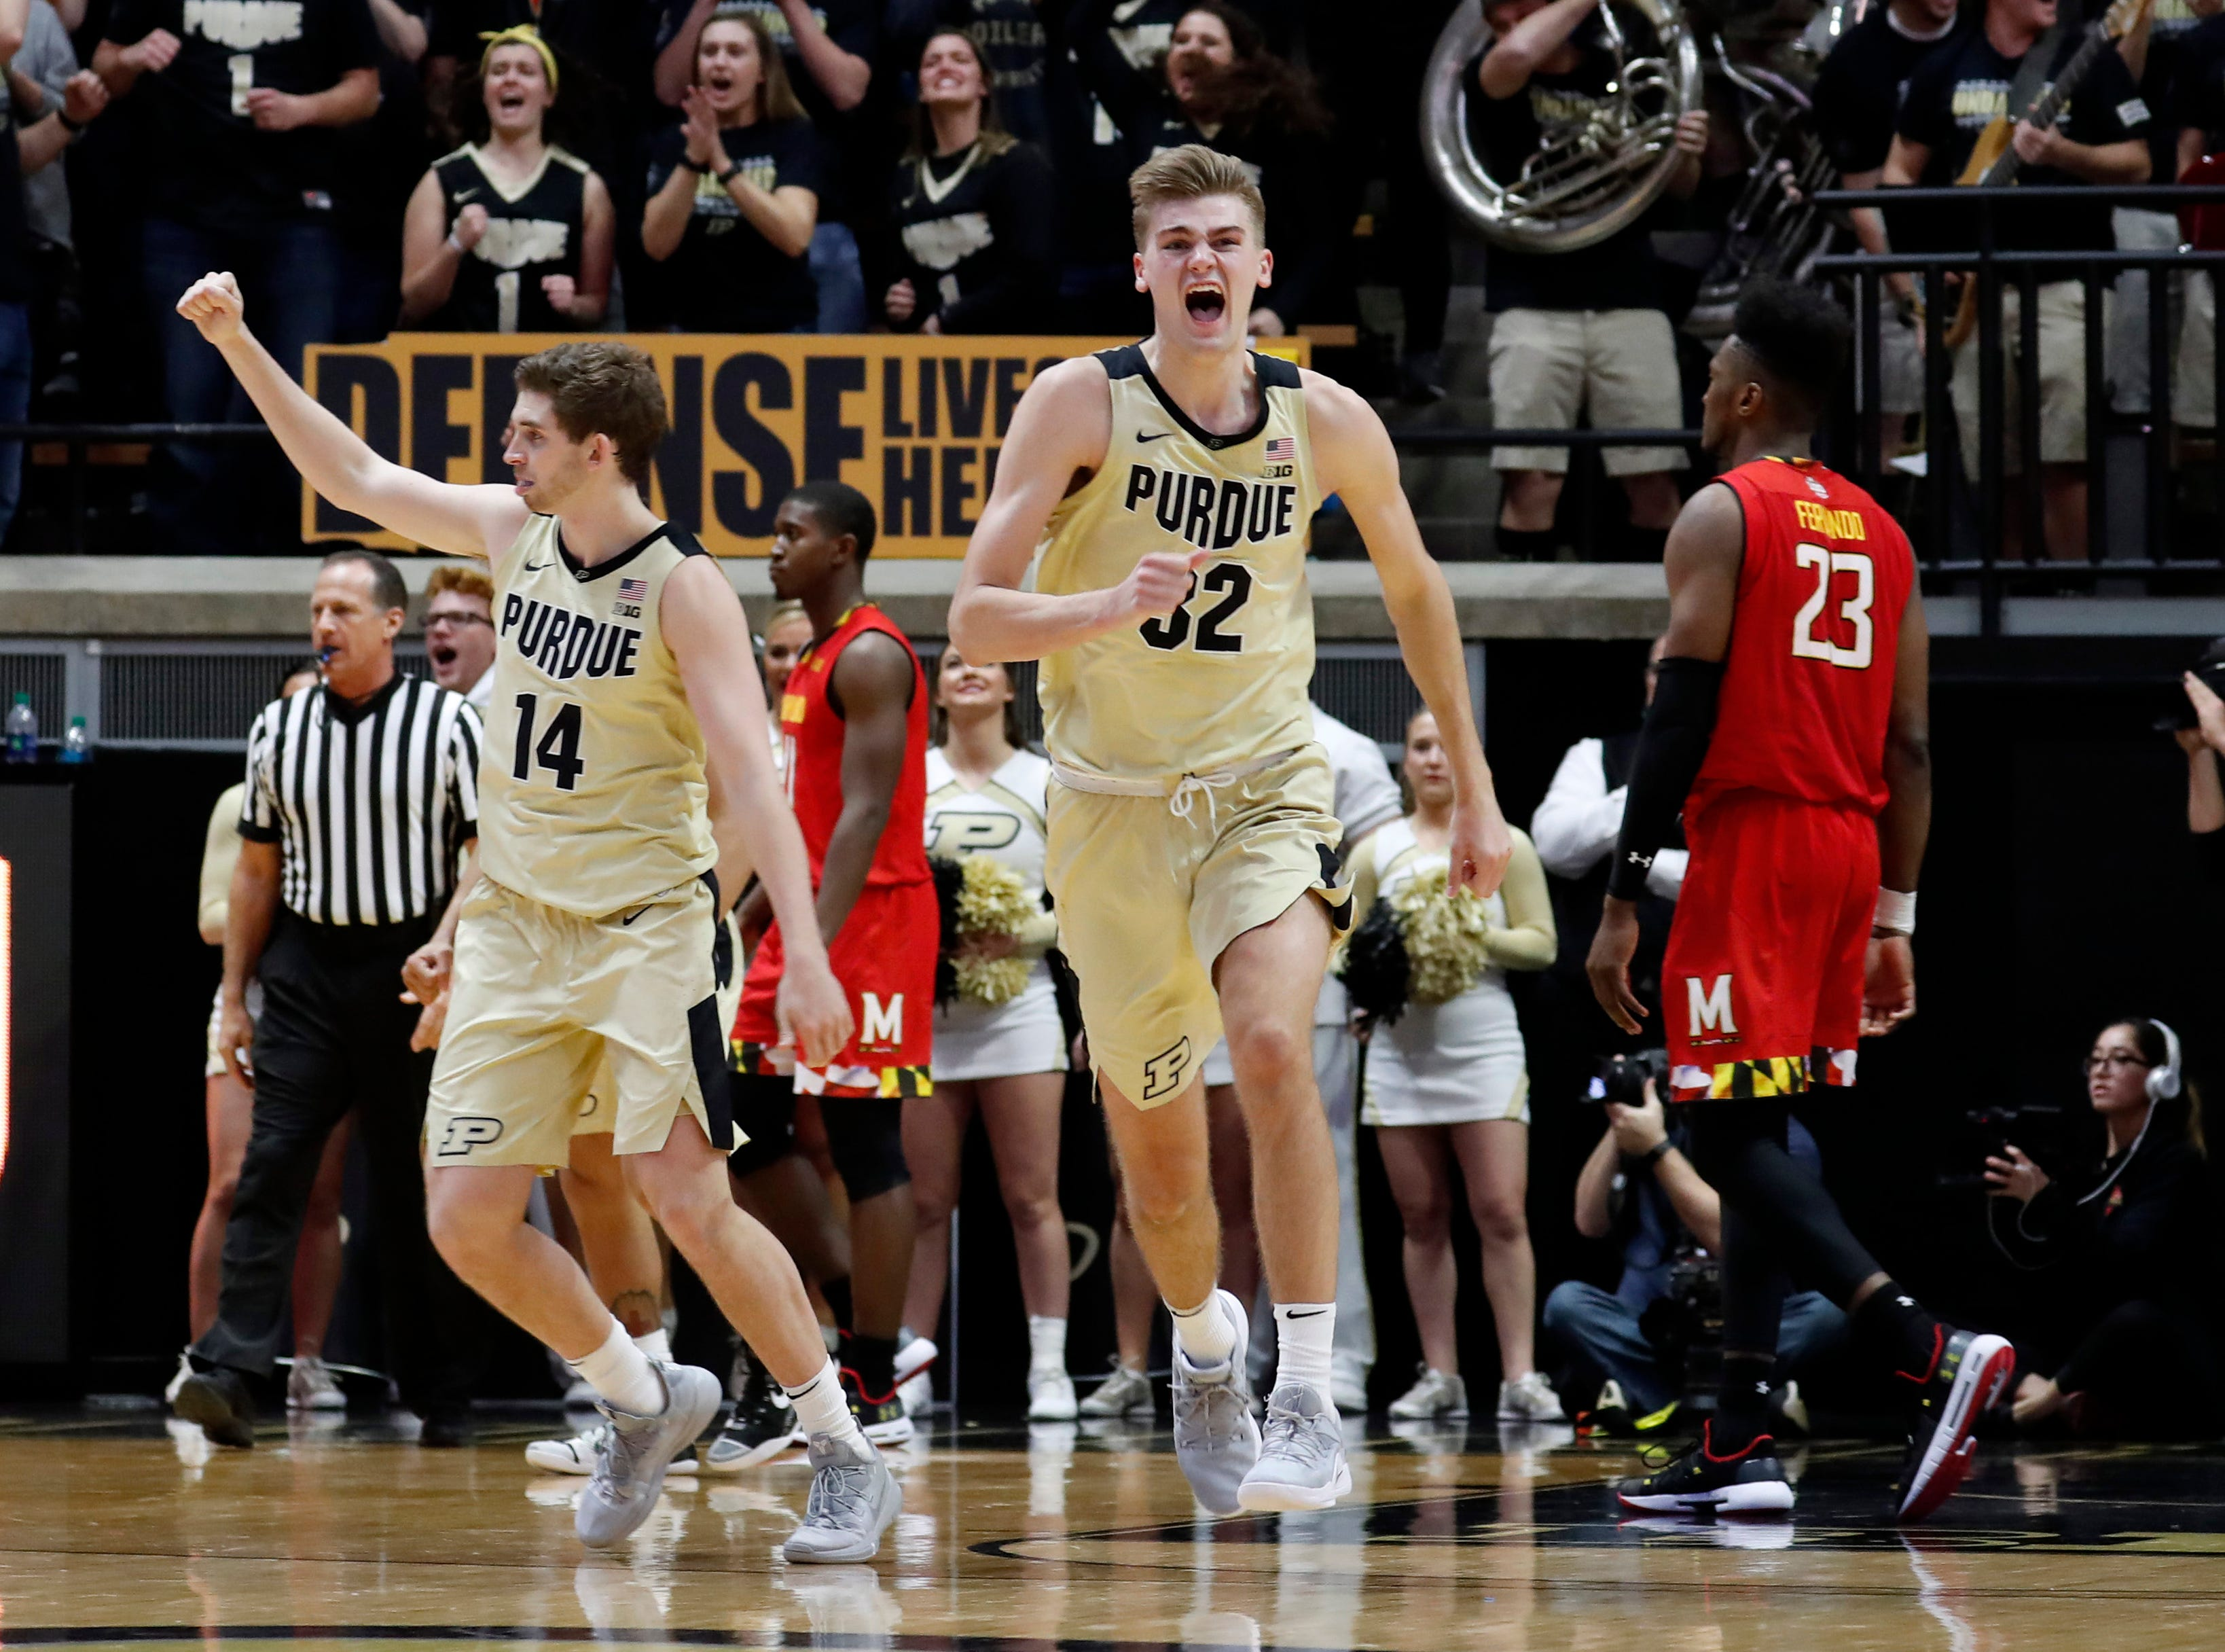 Dec 6, 2018; West Lafayette, IN, USA; Purdue Boilermakers center Matt Haarms (32) and guard Ryan Cline (14) react after the game to Purdue winning against the Maryland Terrapins at Mackey Arena. Mandatory Credit: Brian Spurlock-USA TODAY Sports